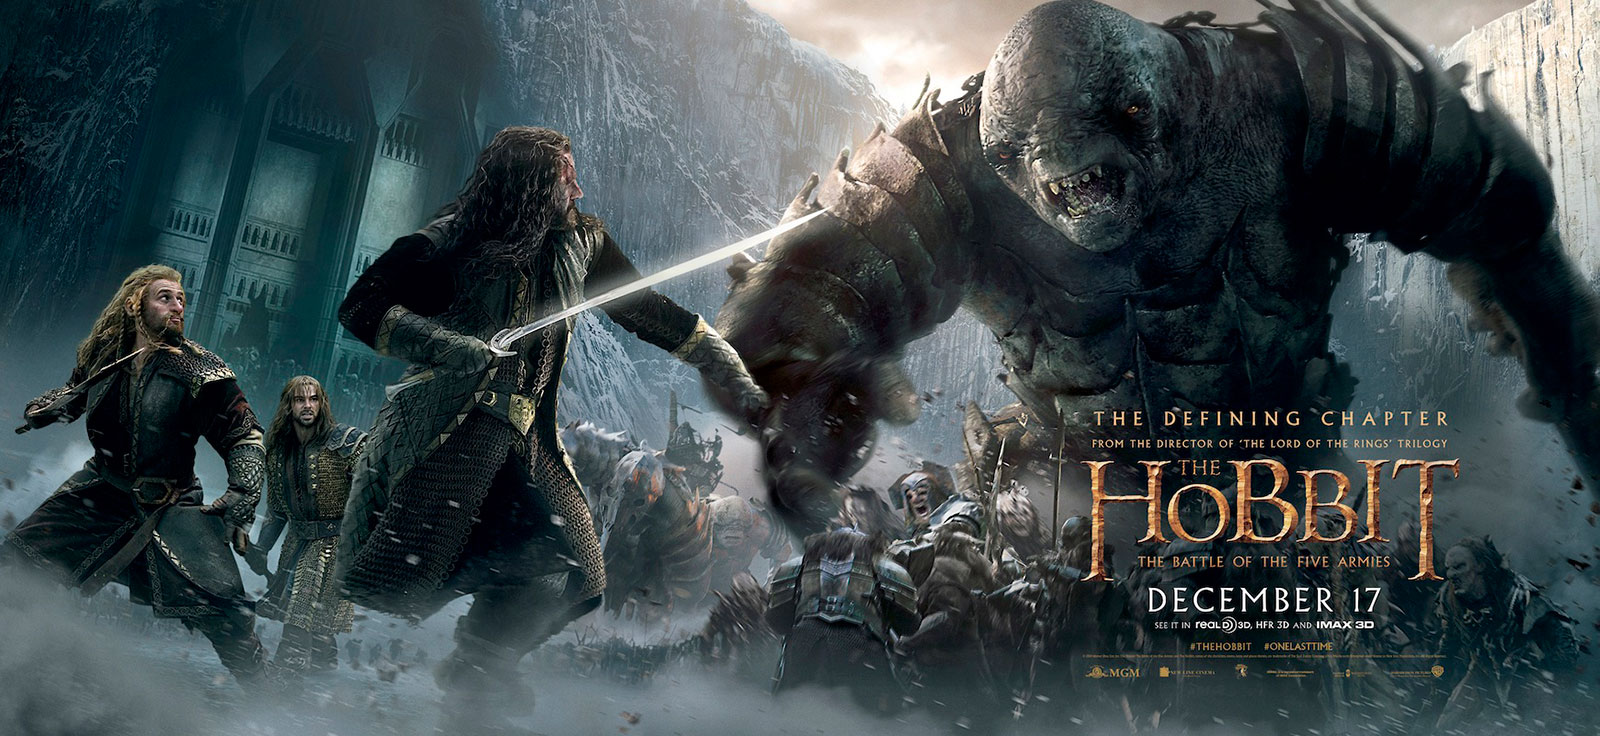 The Hobbit 3 The Battle of the Five Armies Desktop Wallpaper HD 1600x736